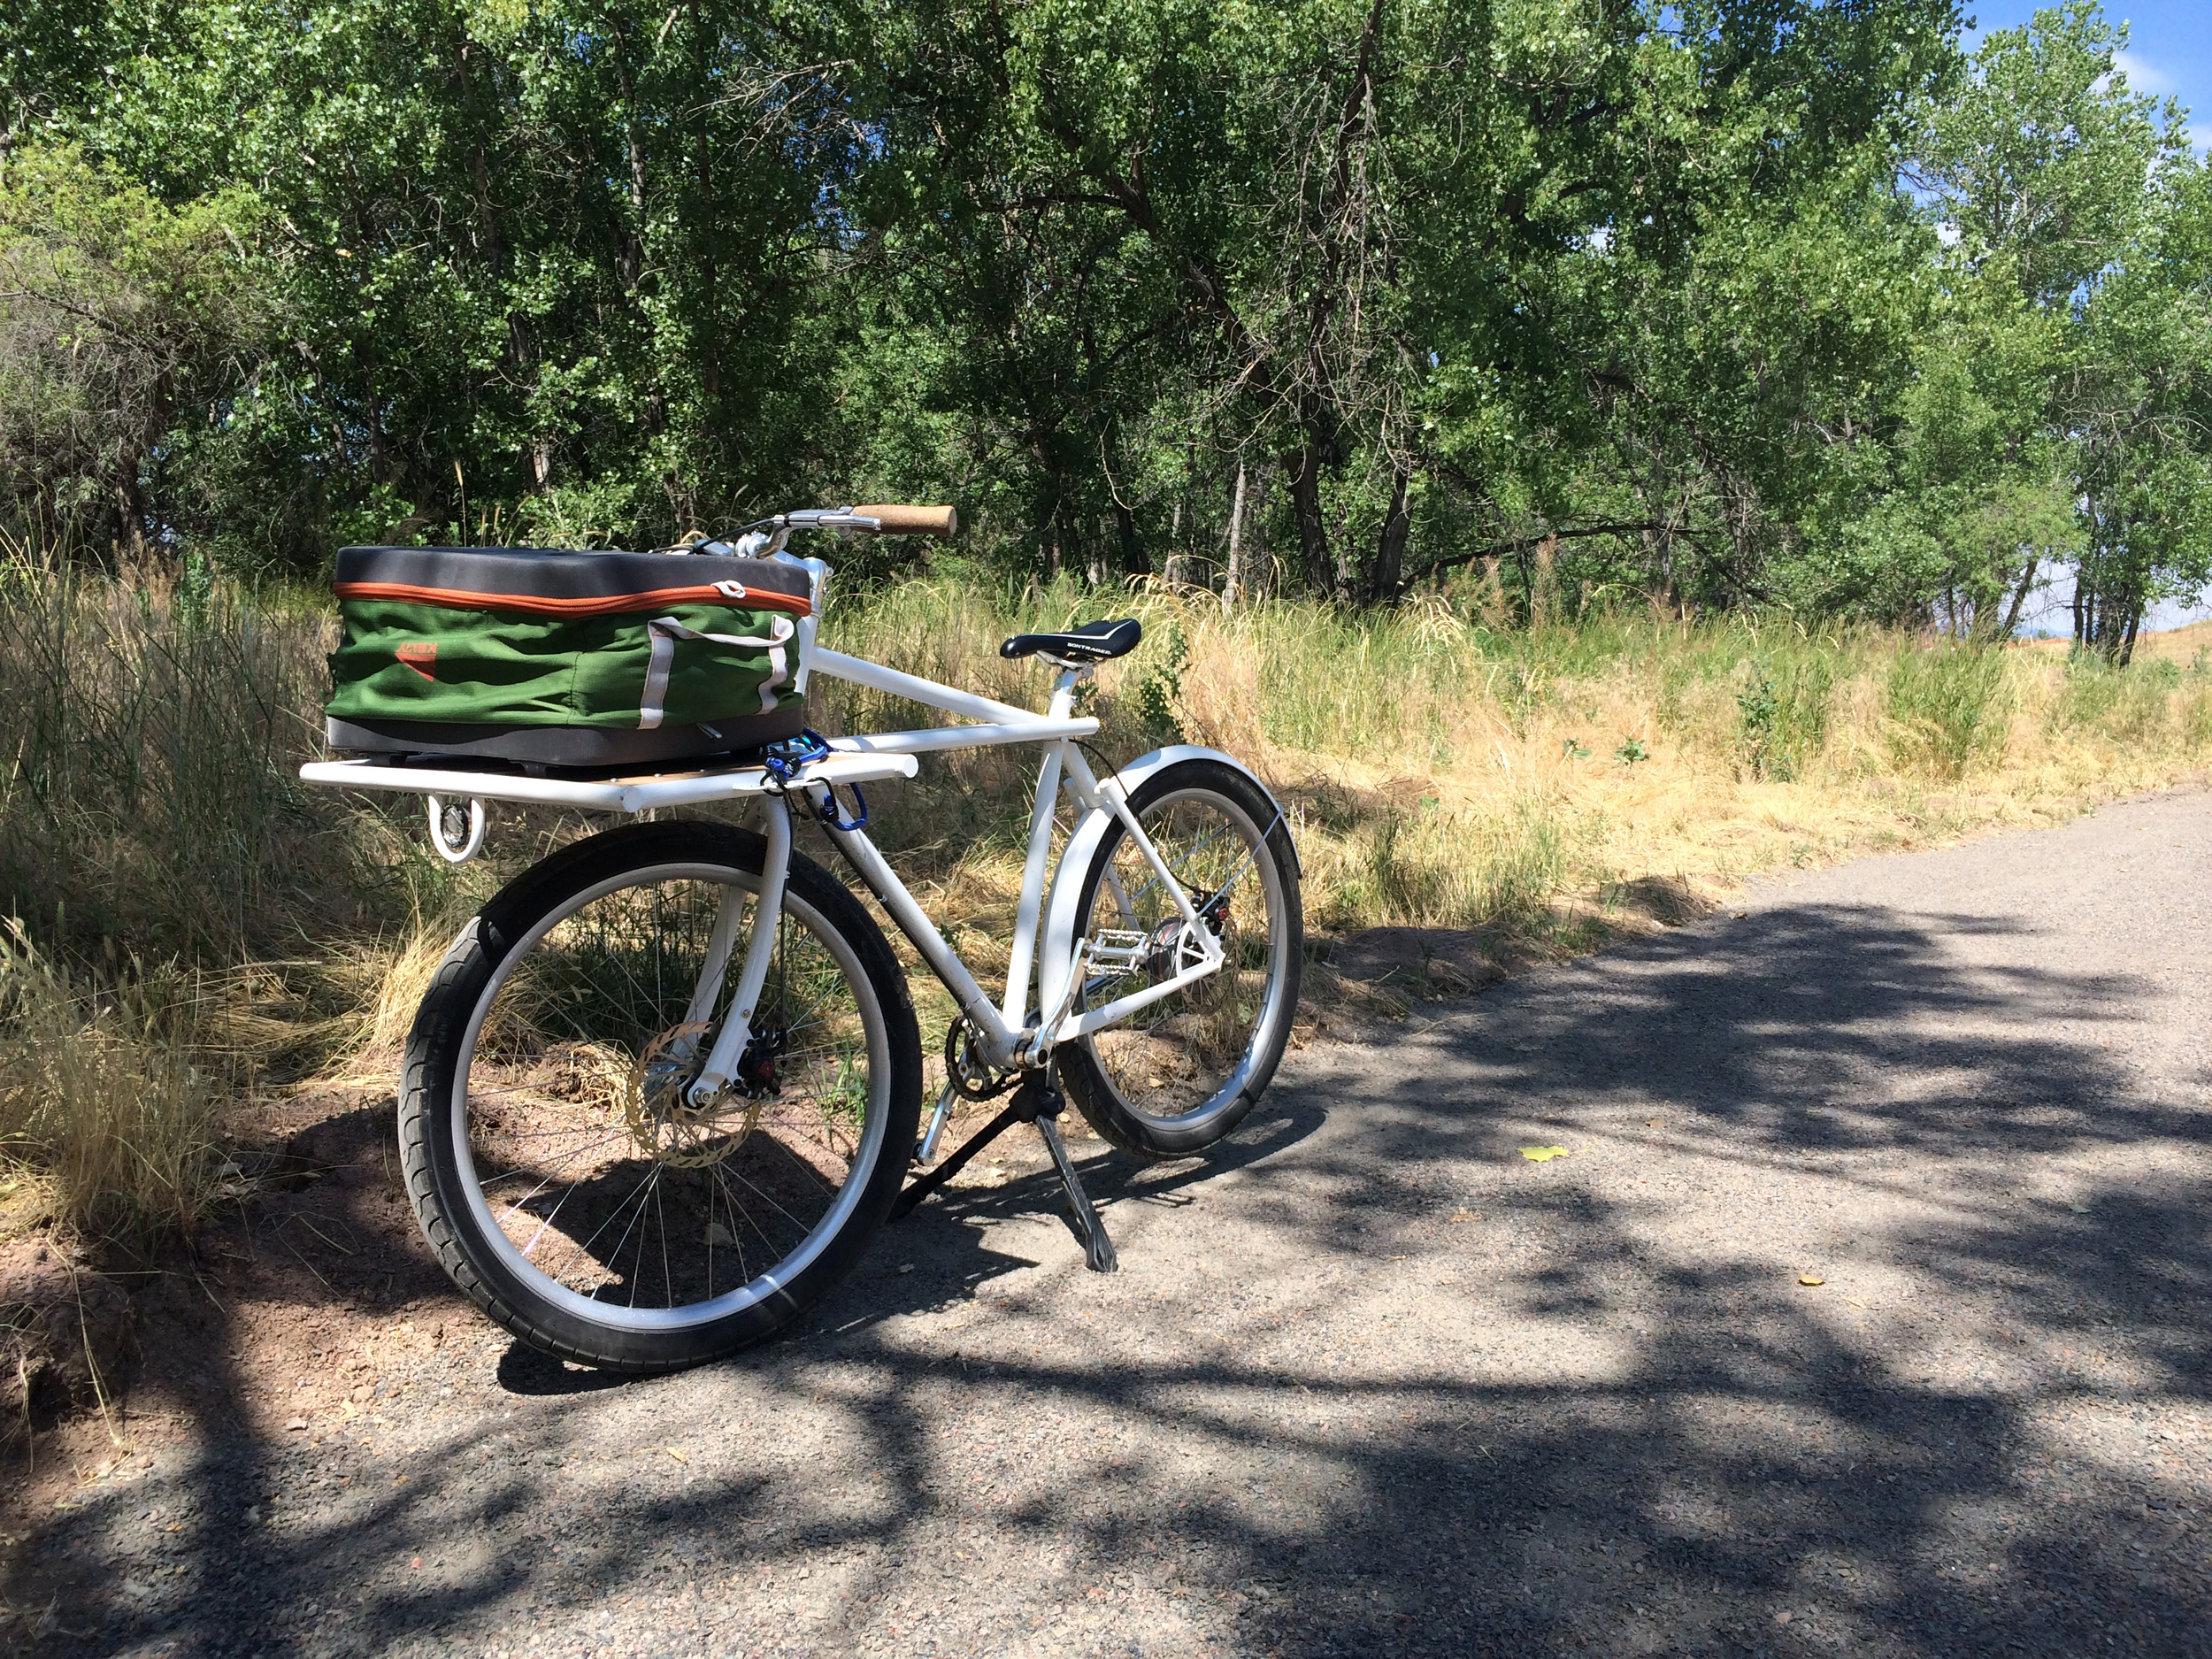 This was a bike we built while we were in the Bay area. With a postal bike frame, and enough space on the front for several bags of groceries it makes a great utility bike. A front dynamo hub runs the headlight, and an internal hub gets the gearing right.